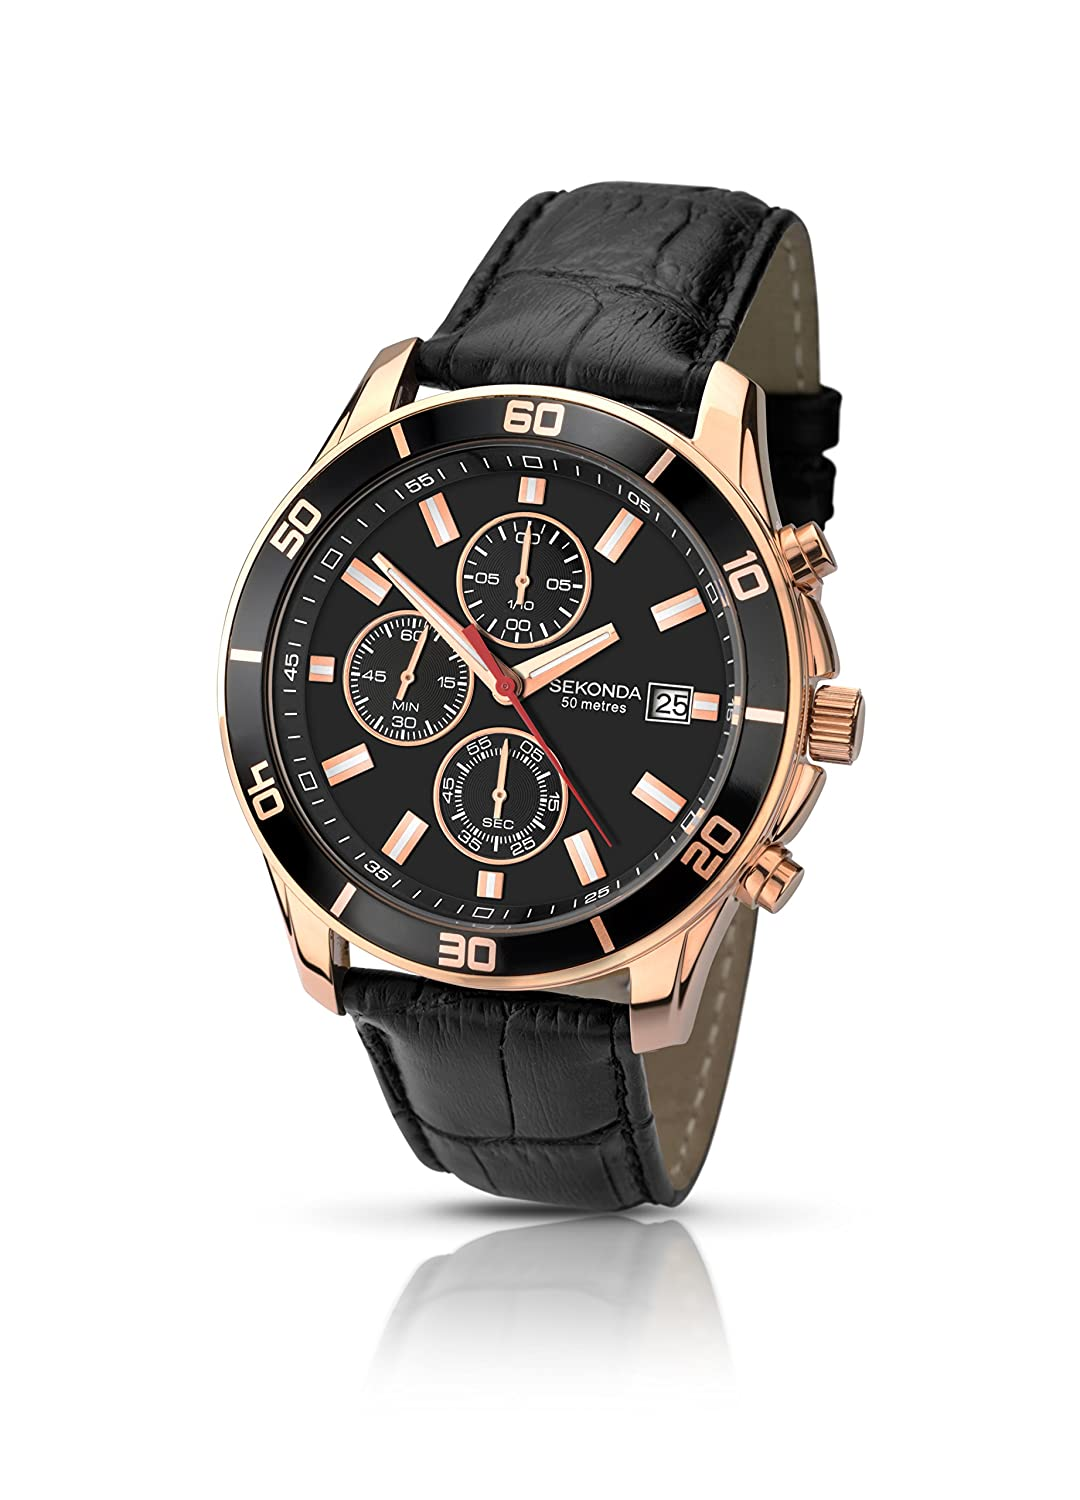 0472d6e1741b Sekonda Men s Quartz Watch with Black Dial Chronograph Display and Black  Leather Strap 1051.27  Amazon.co.uk  Watches